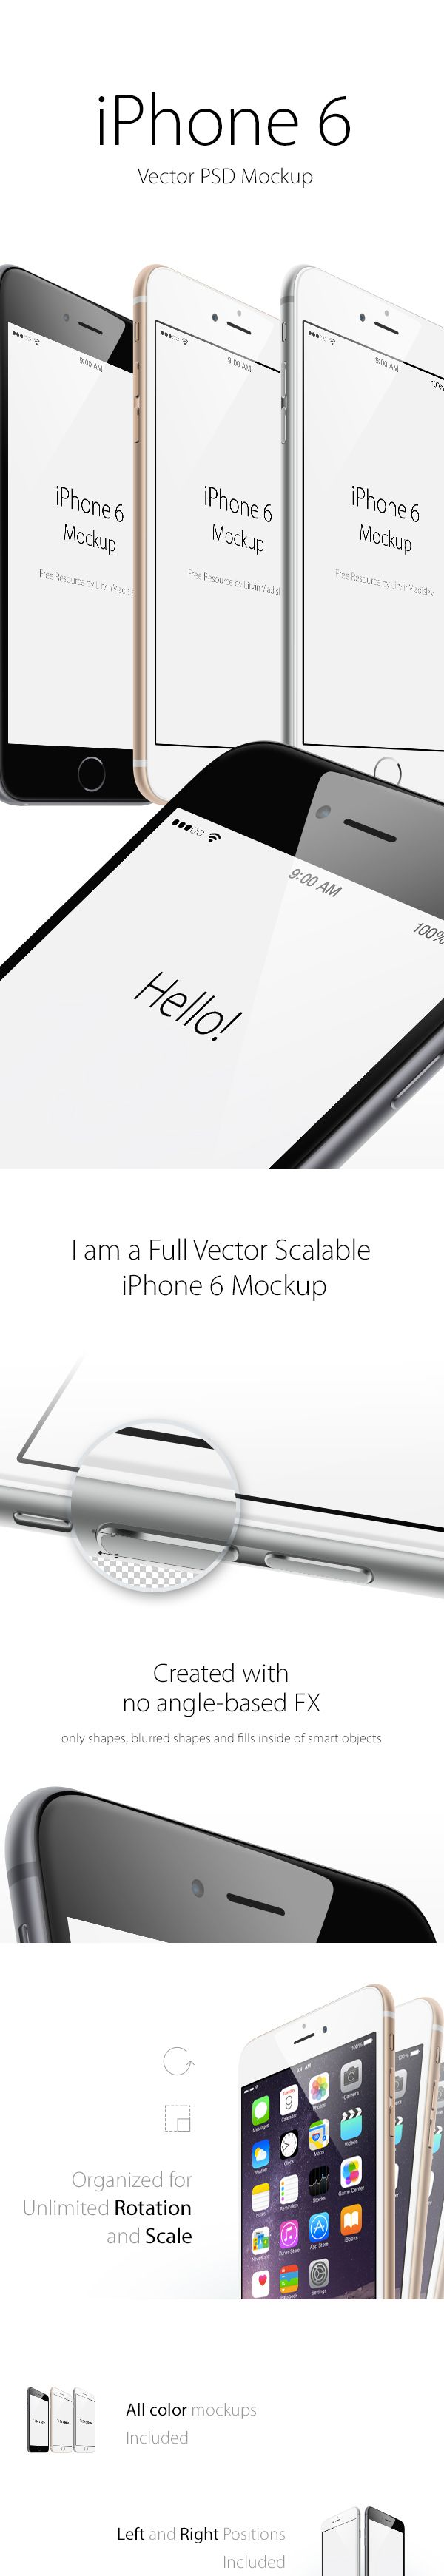 iPhone 6 Plus Angle View MockUp | GraphicBurger